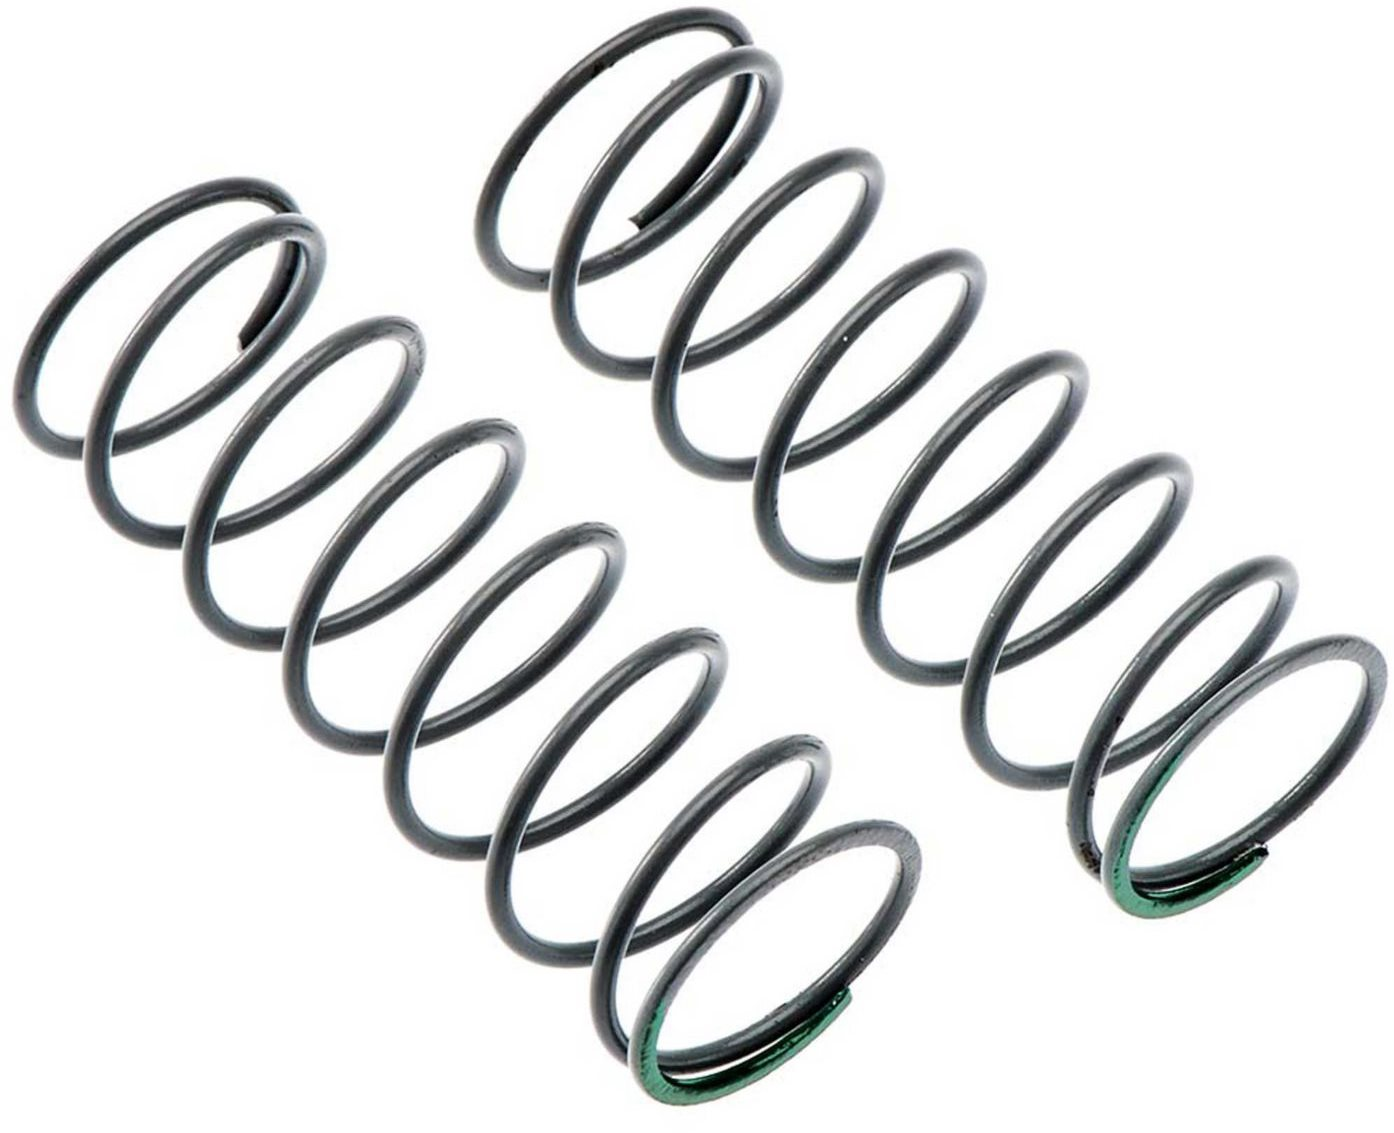 Axial Spring 12.5x40mm 4.08lbs/in Medium Green (2)